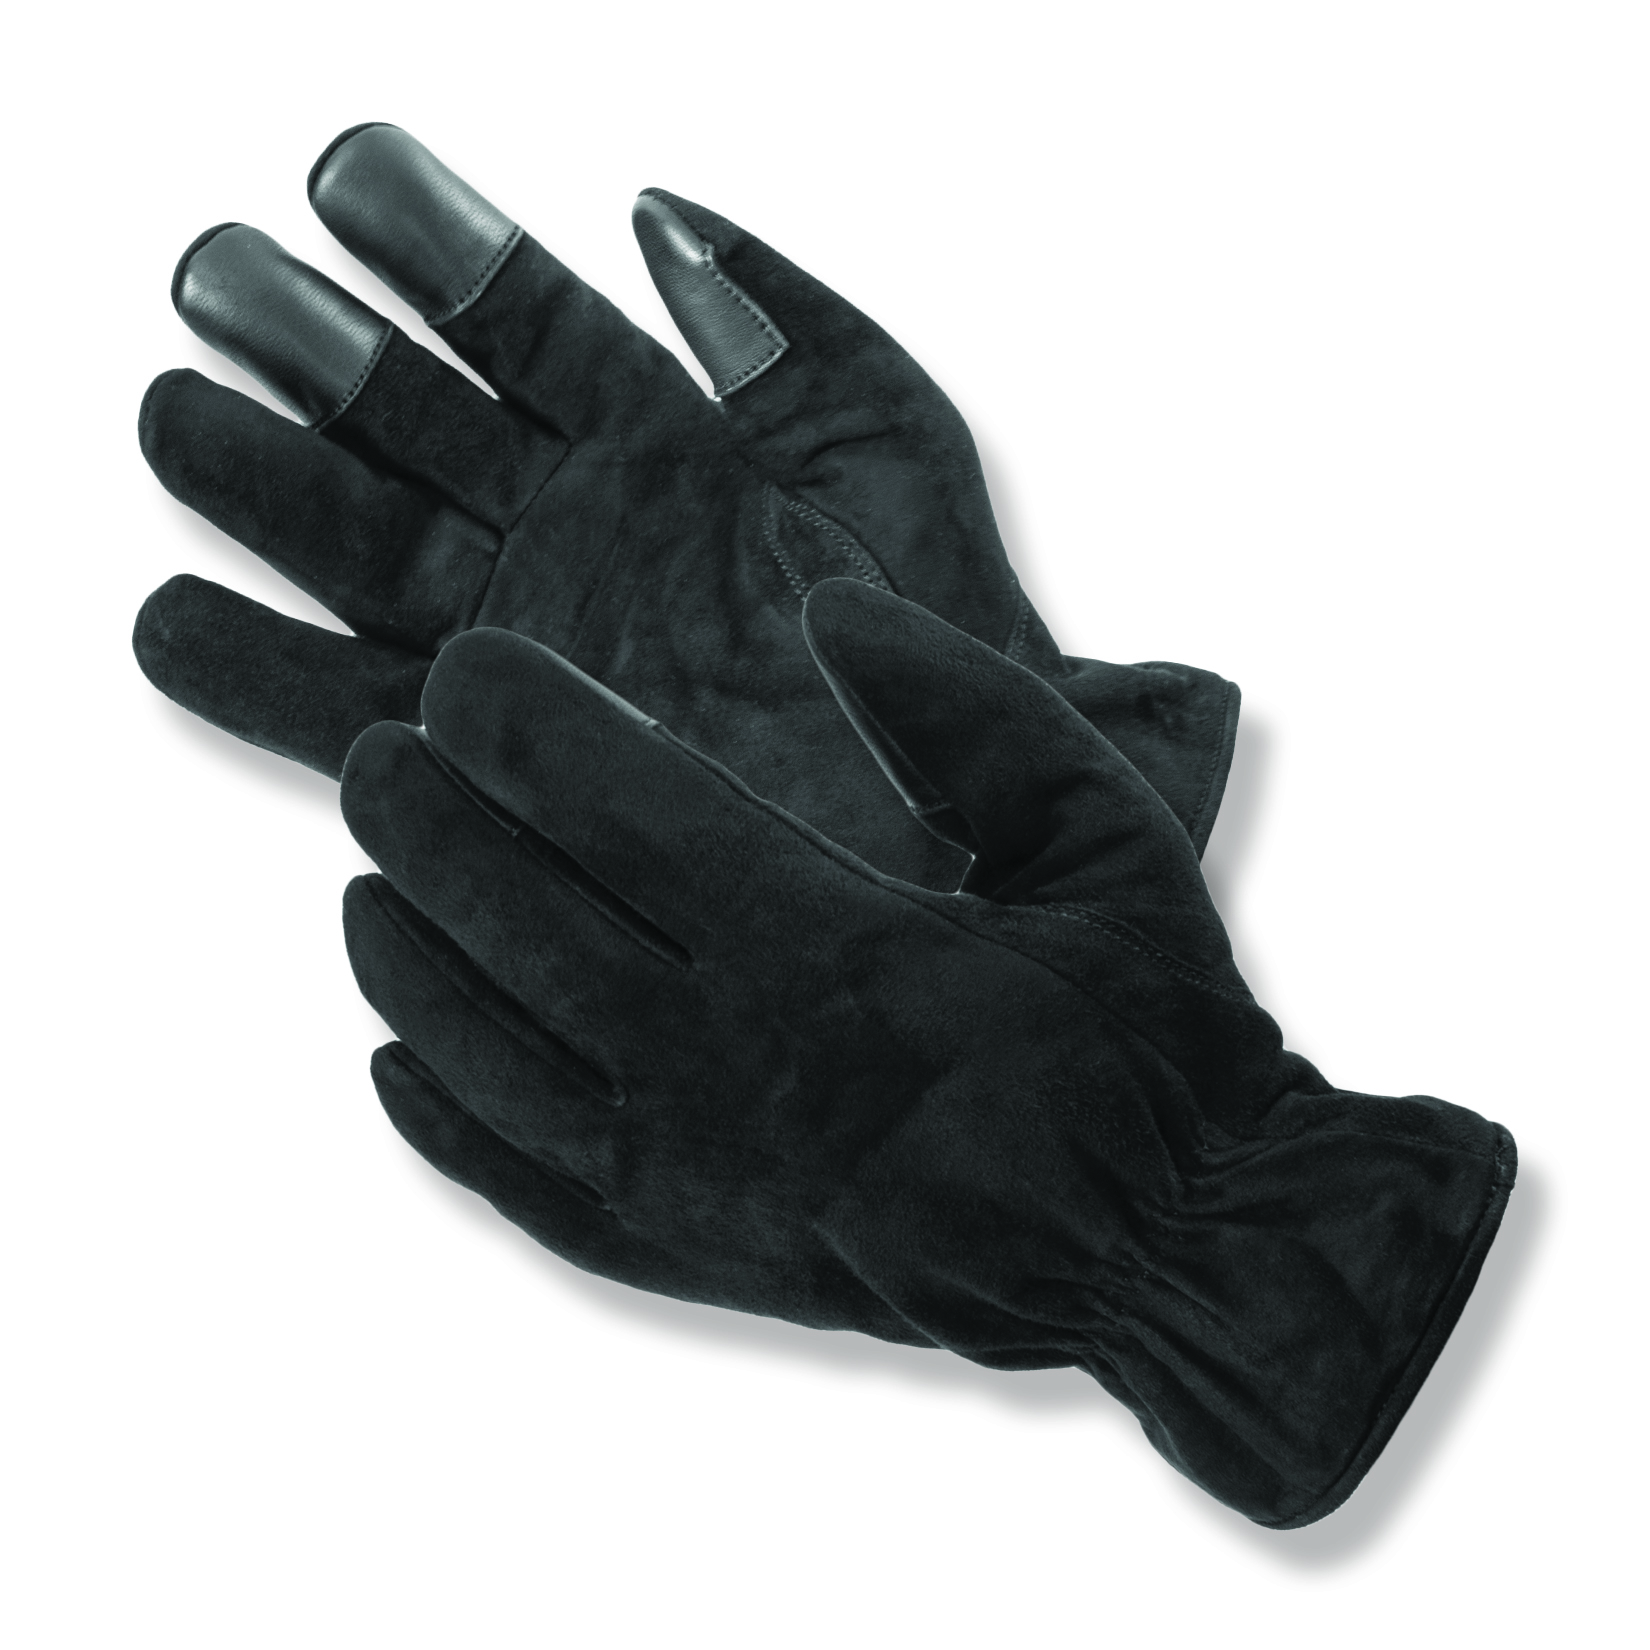 Suede leather Courier™ Winter Uniform Gloves feature non-slip fingertip pads, a fleece lining and 100 gram Thinsulate